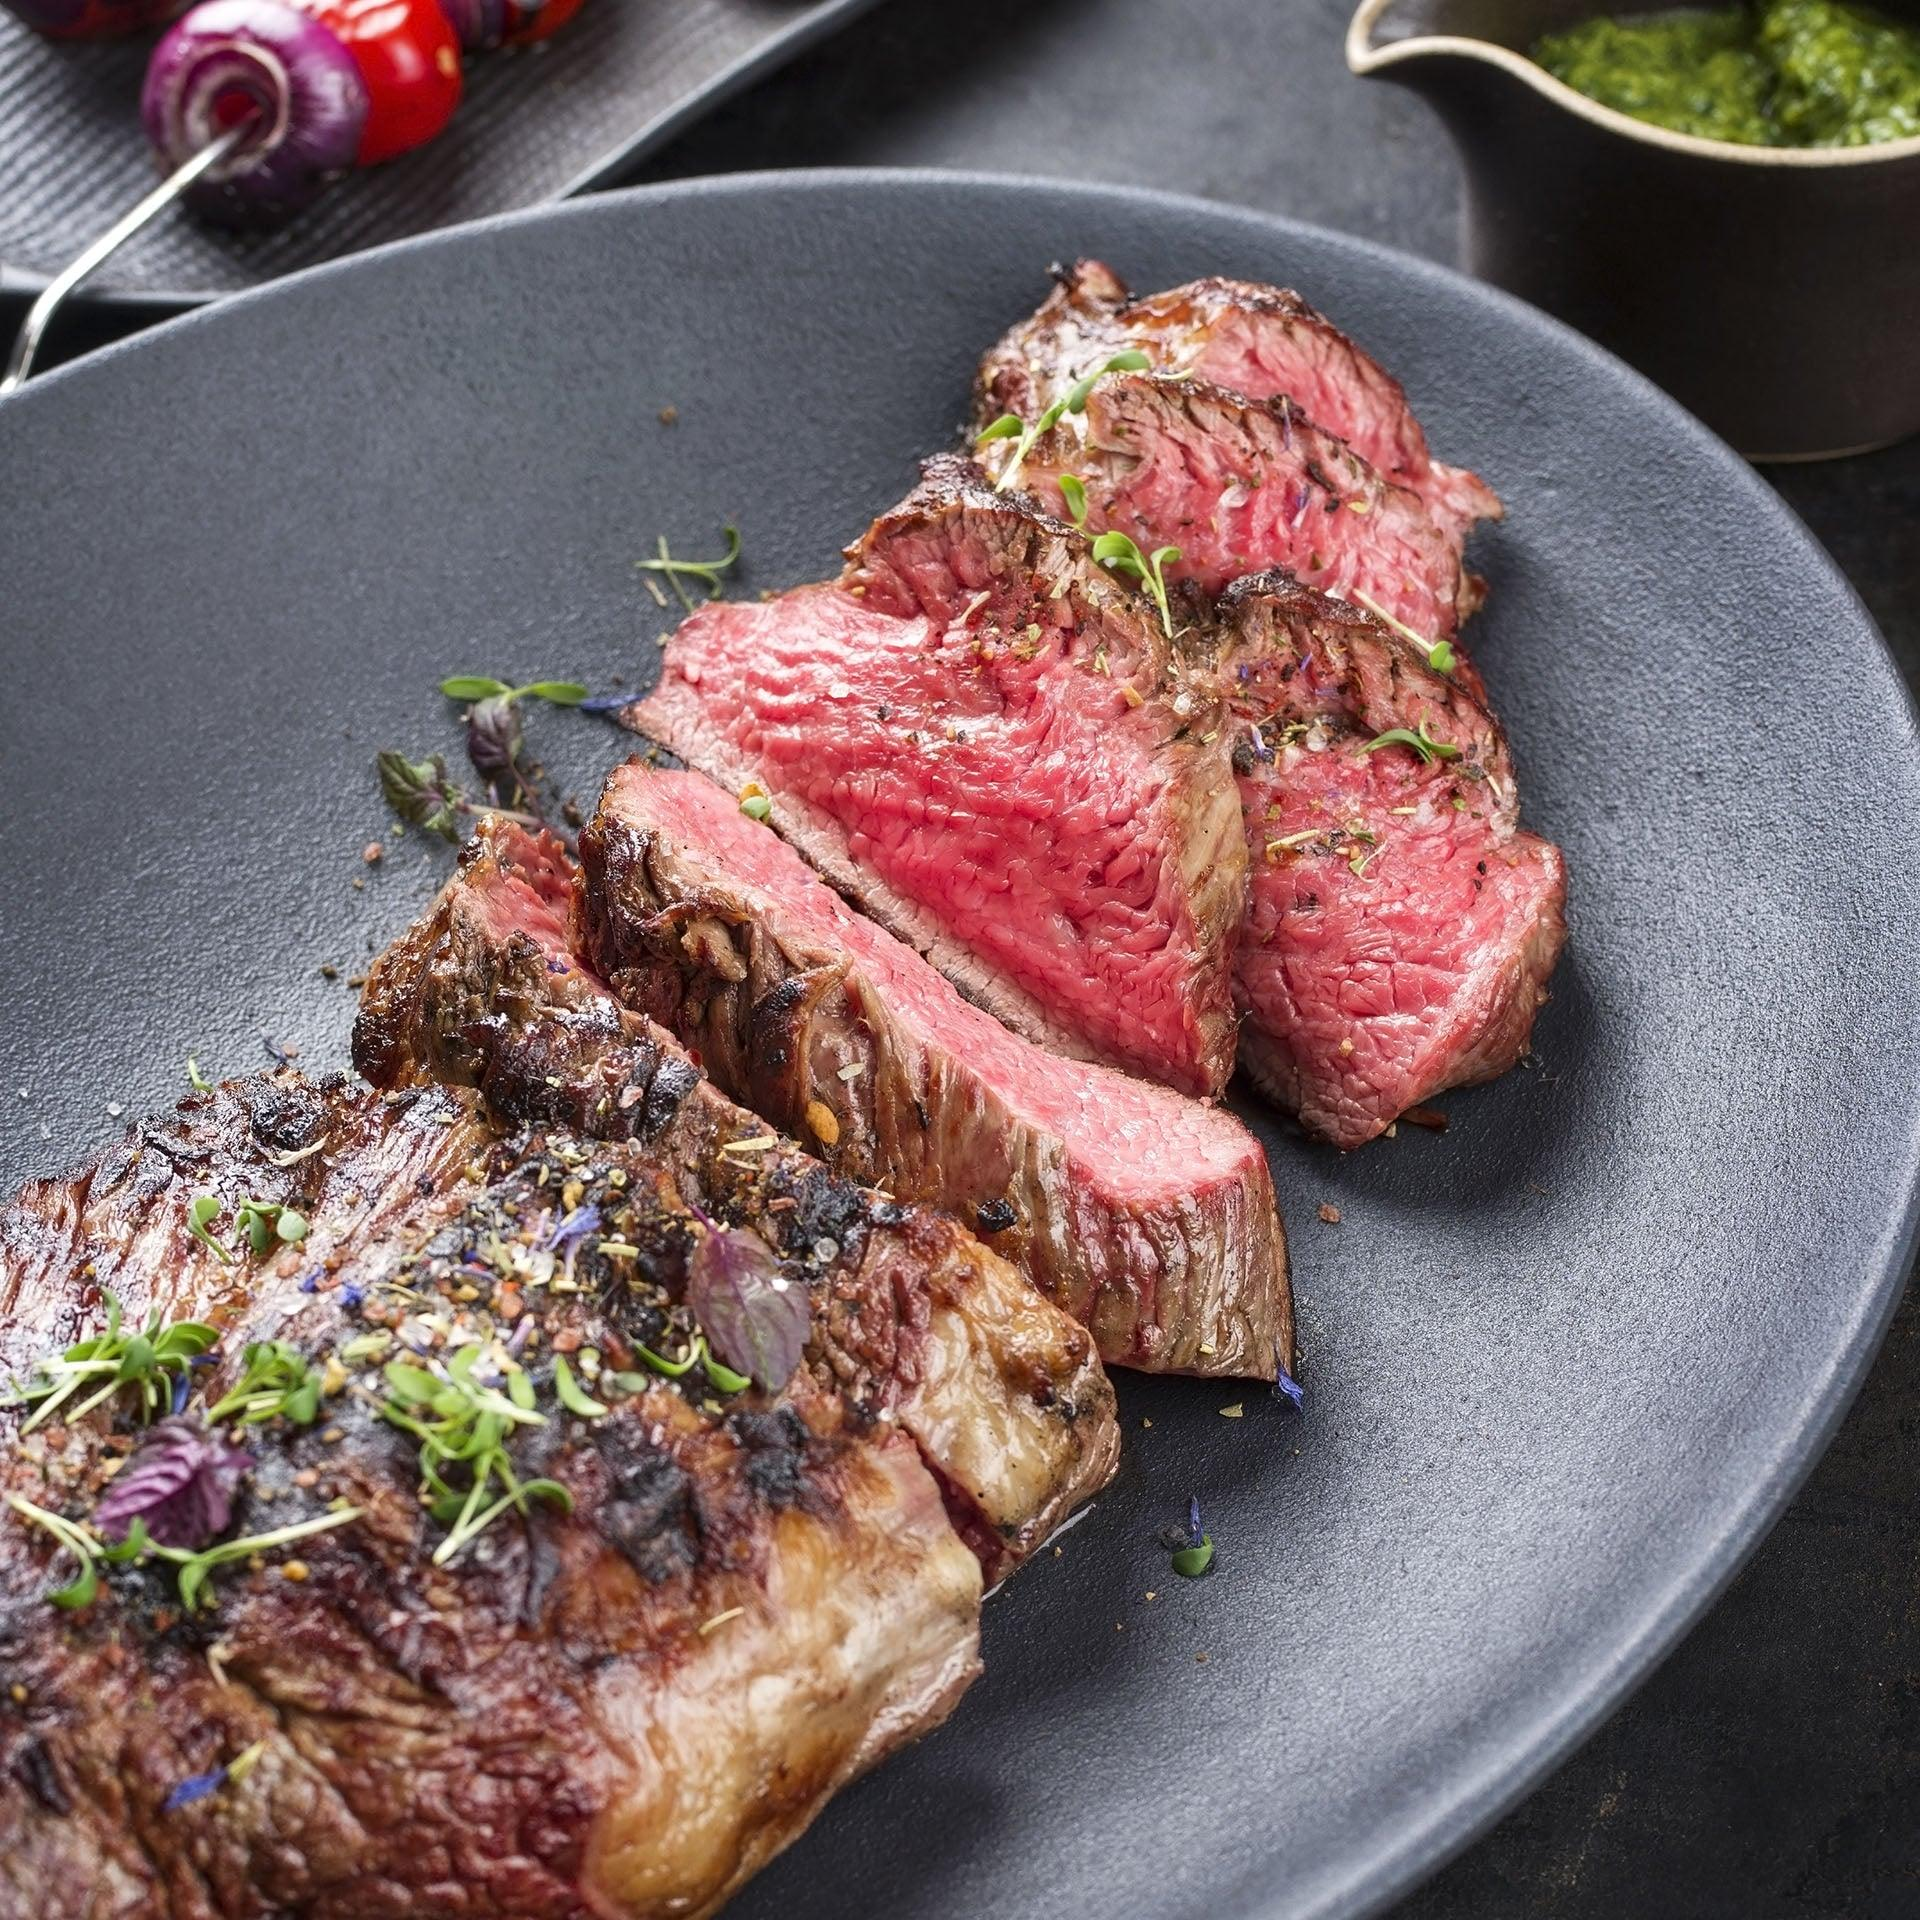 Rich and Full Flavor Grass Fed Beef Pack - $119 for more than 11 pounds, Free Shipping